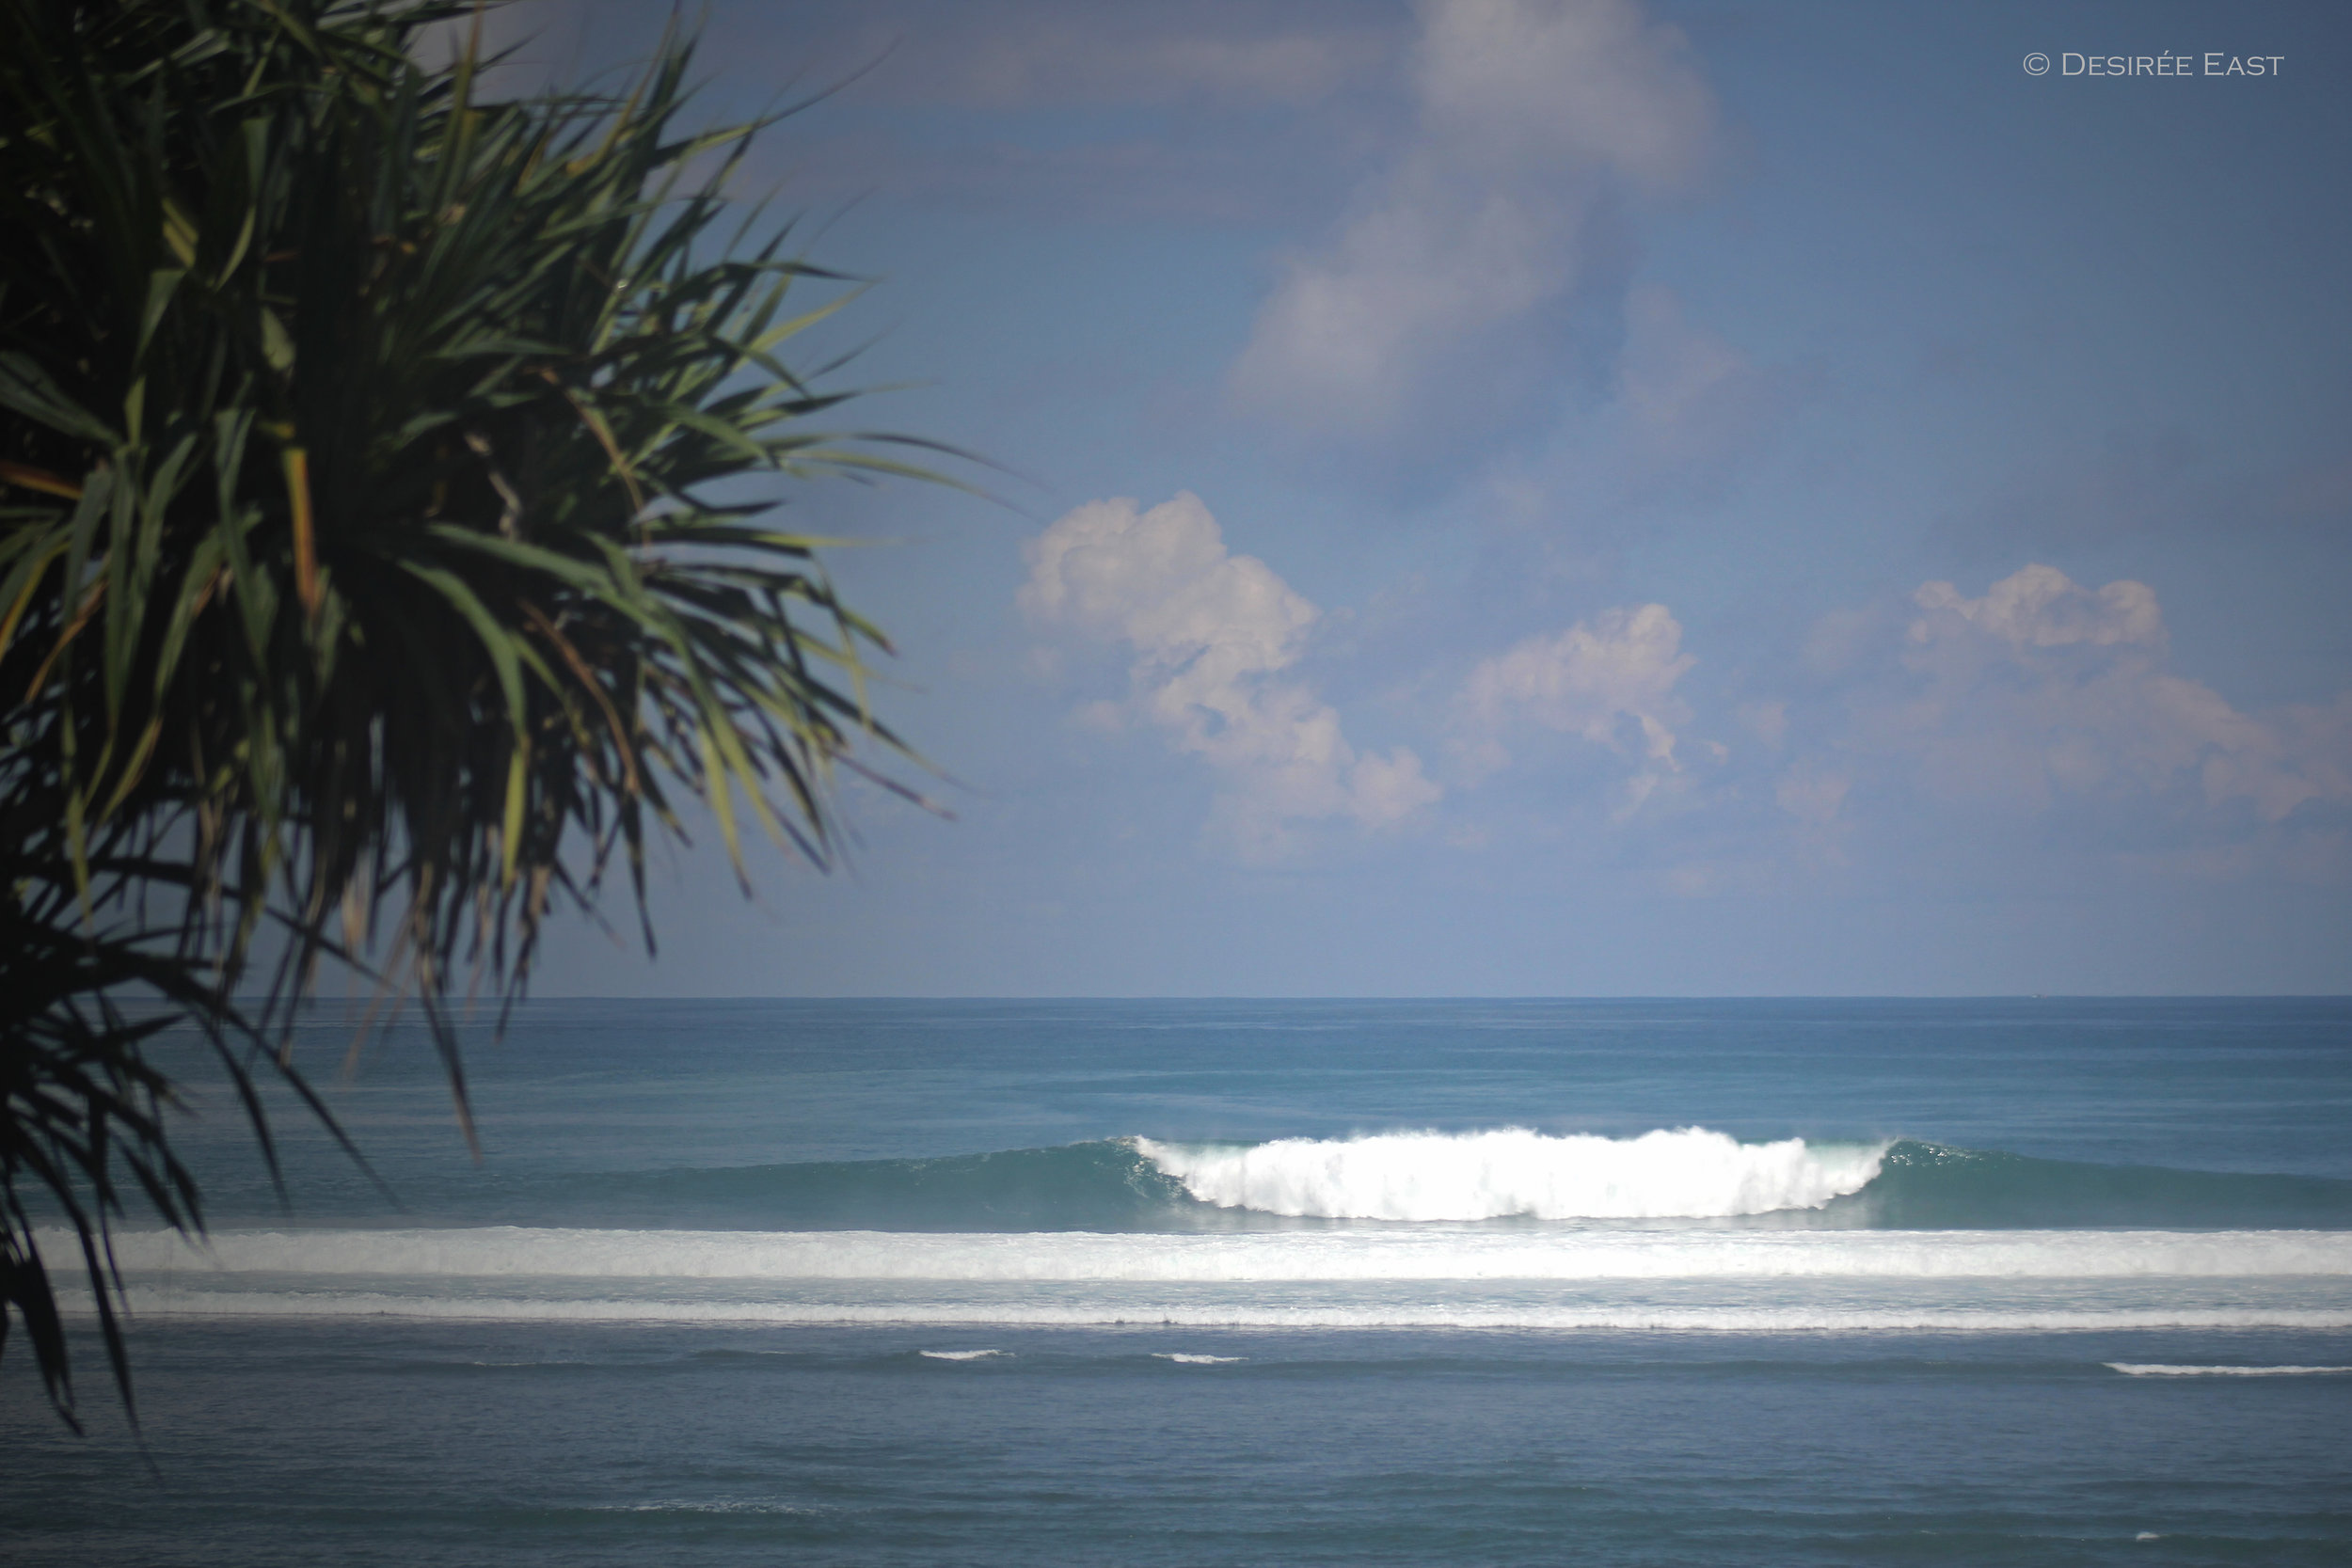 bigger than it looks. bali, indonesia. photo by desiree east